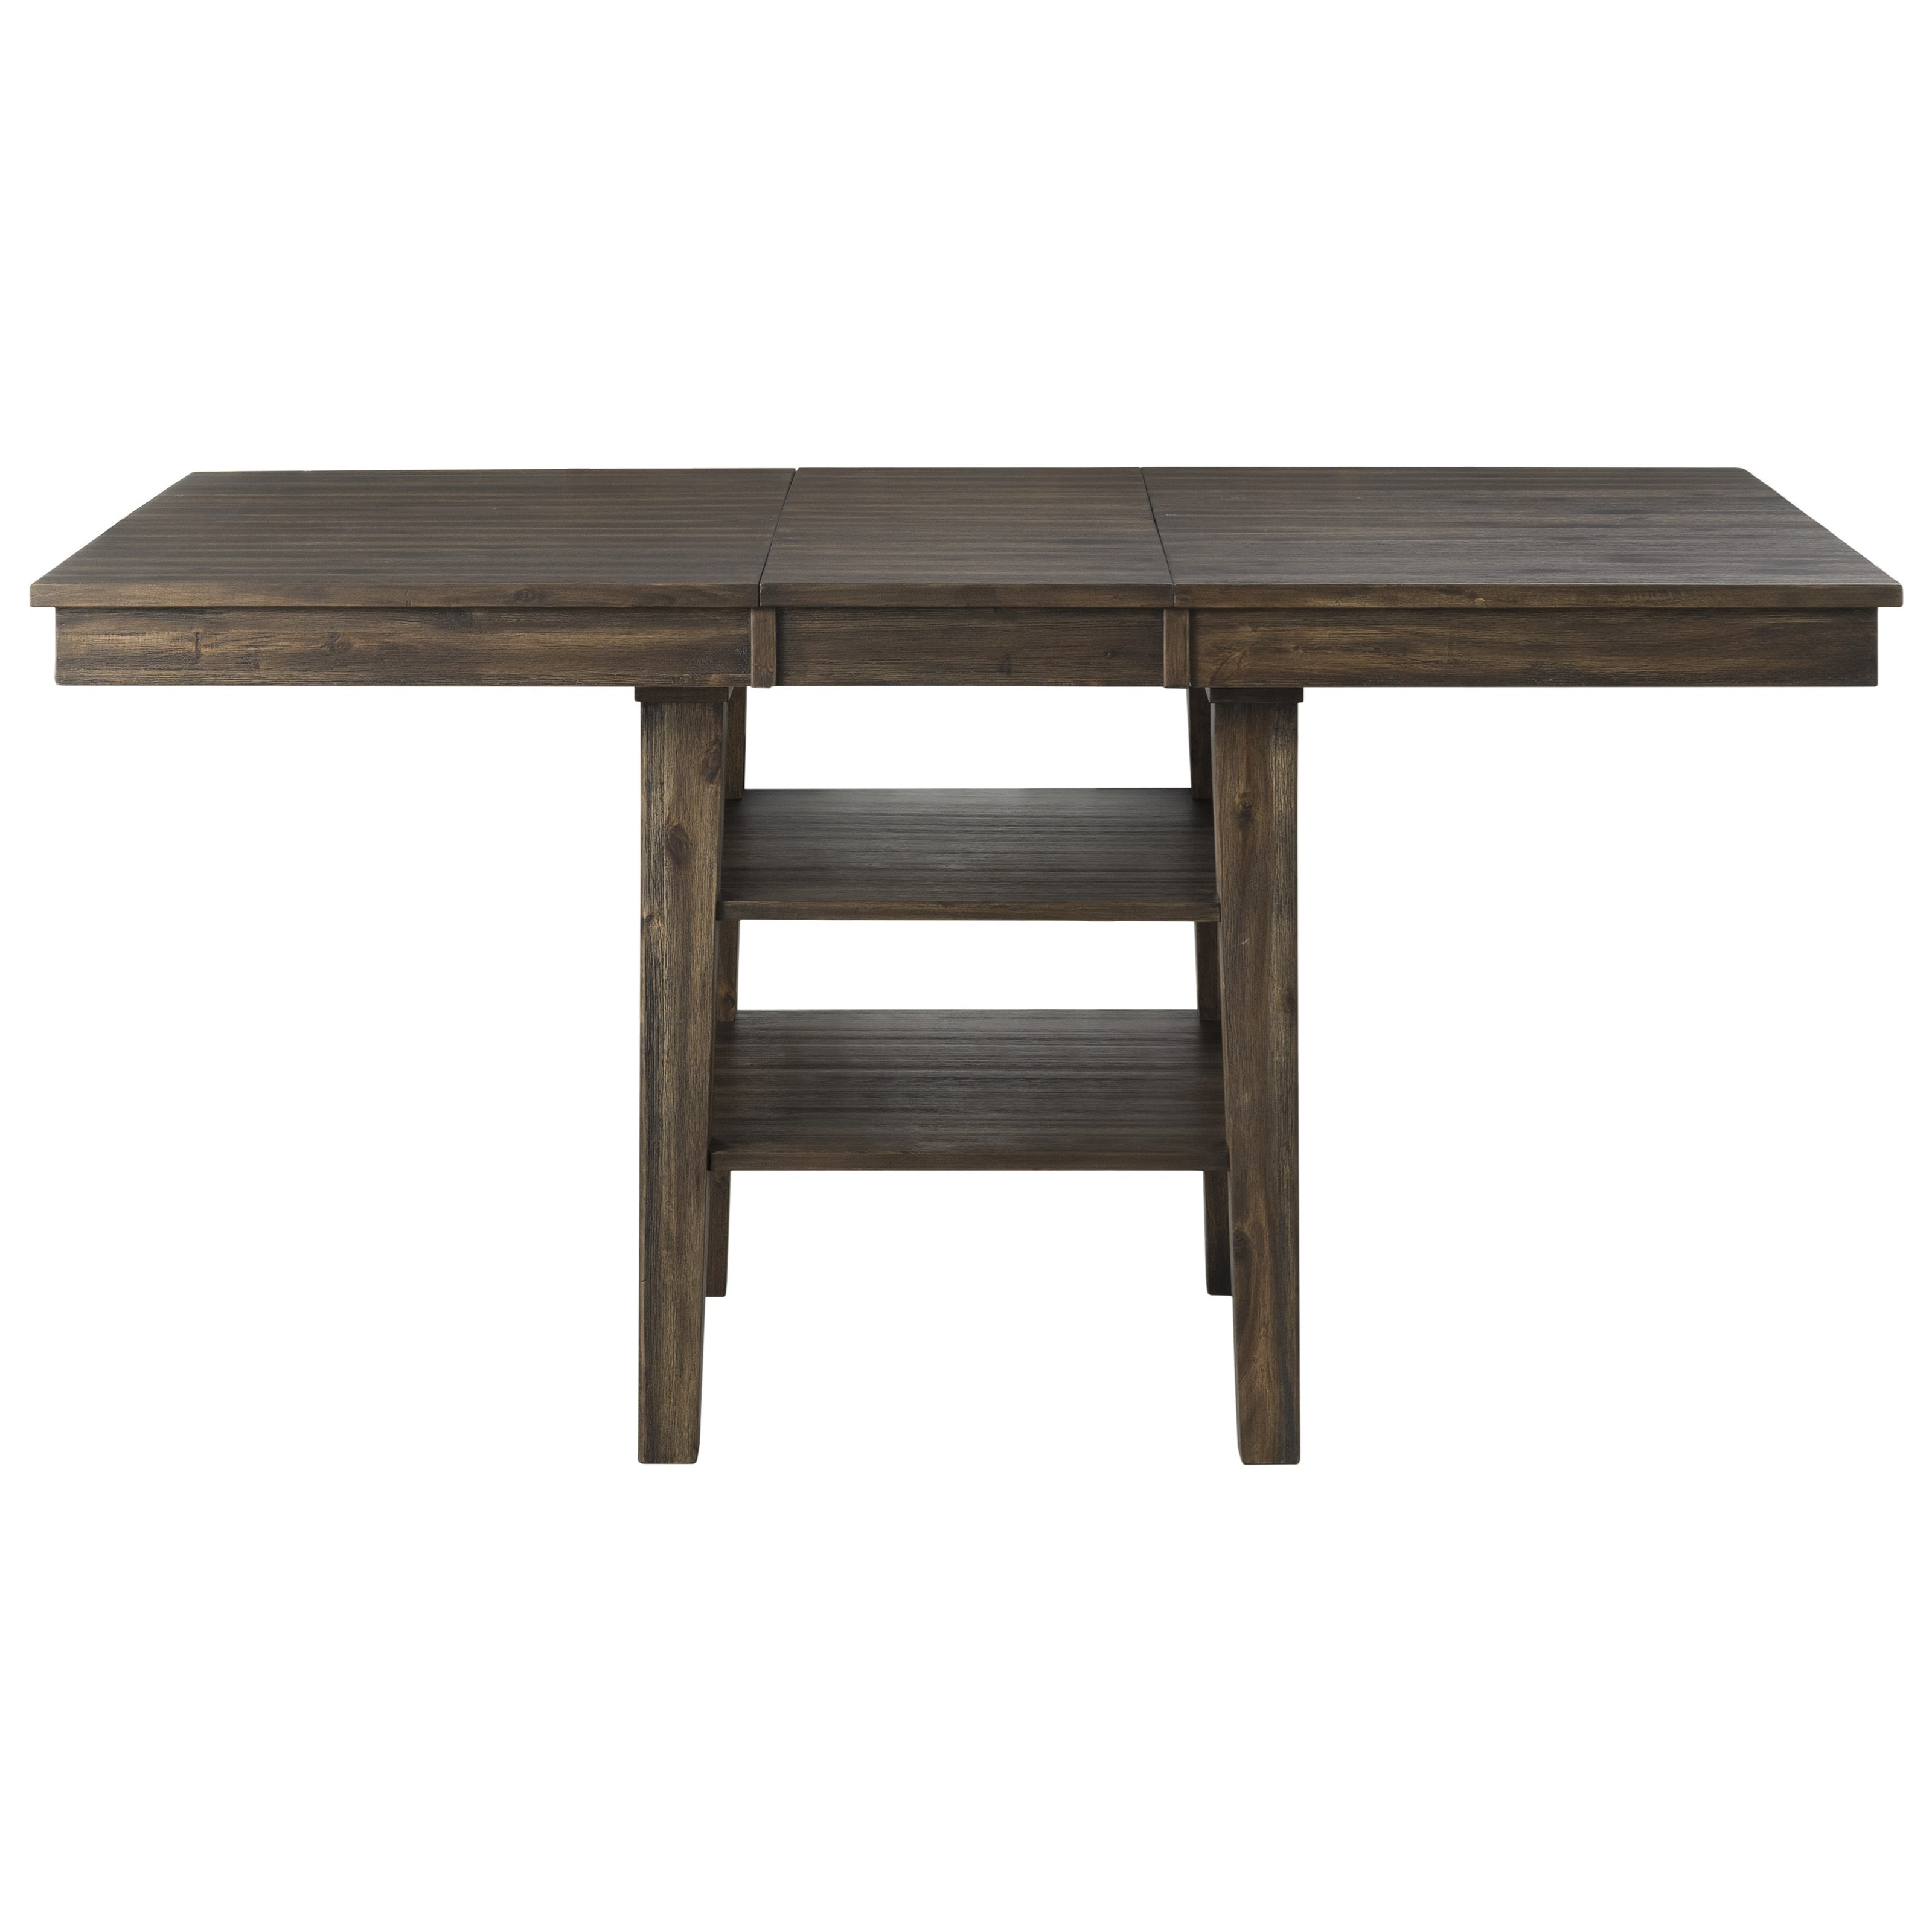 Transitional Solid Wood Counter Height Pedestal Table with 2 Shelves and Leaf